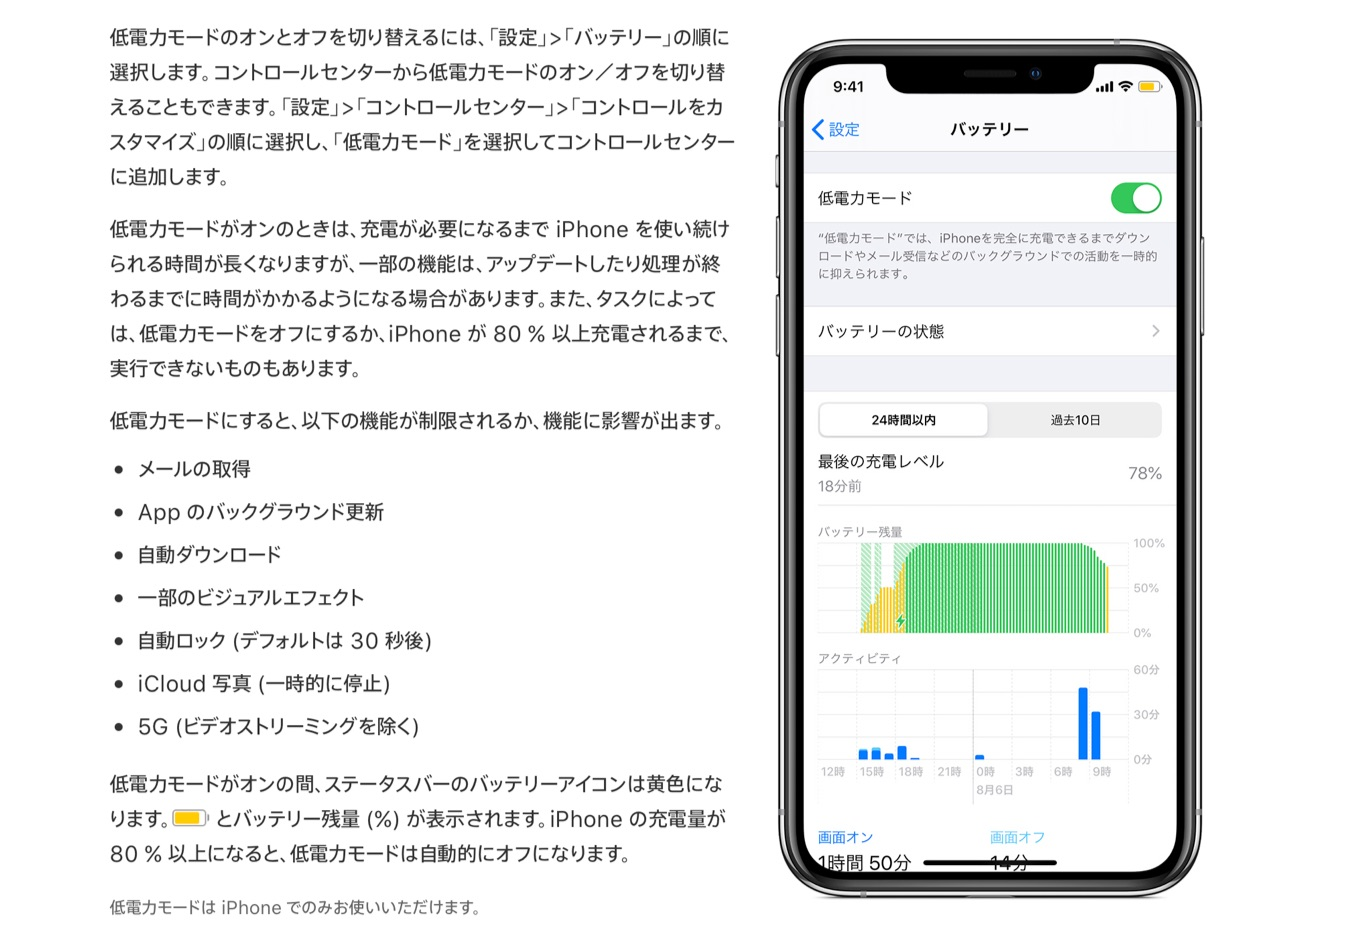 Low Power Mode for iPhone